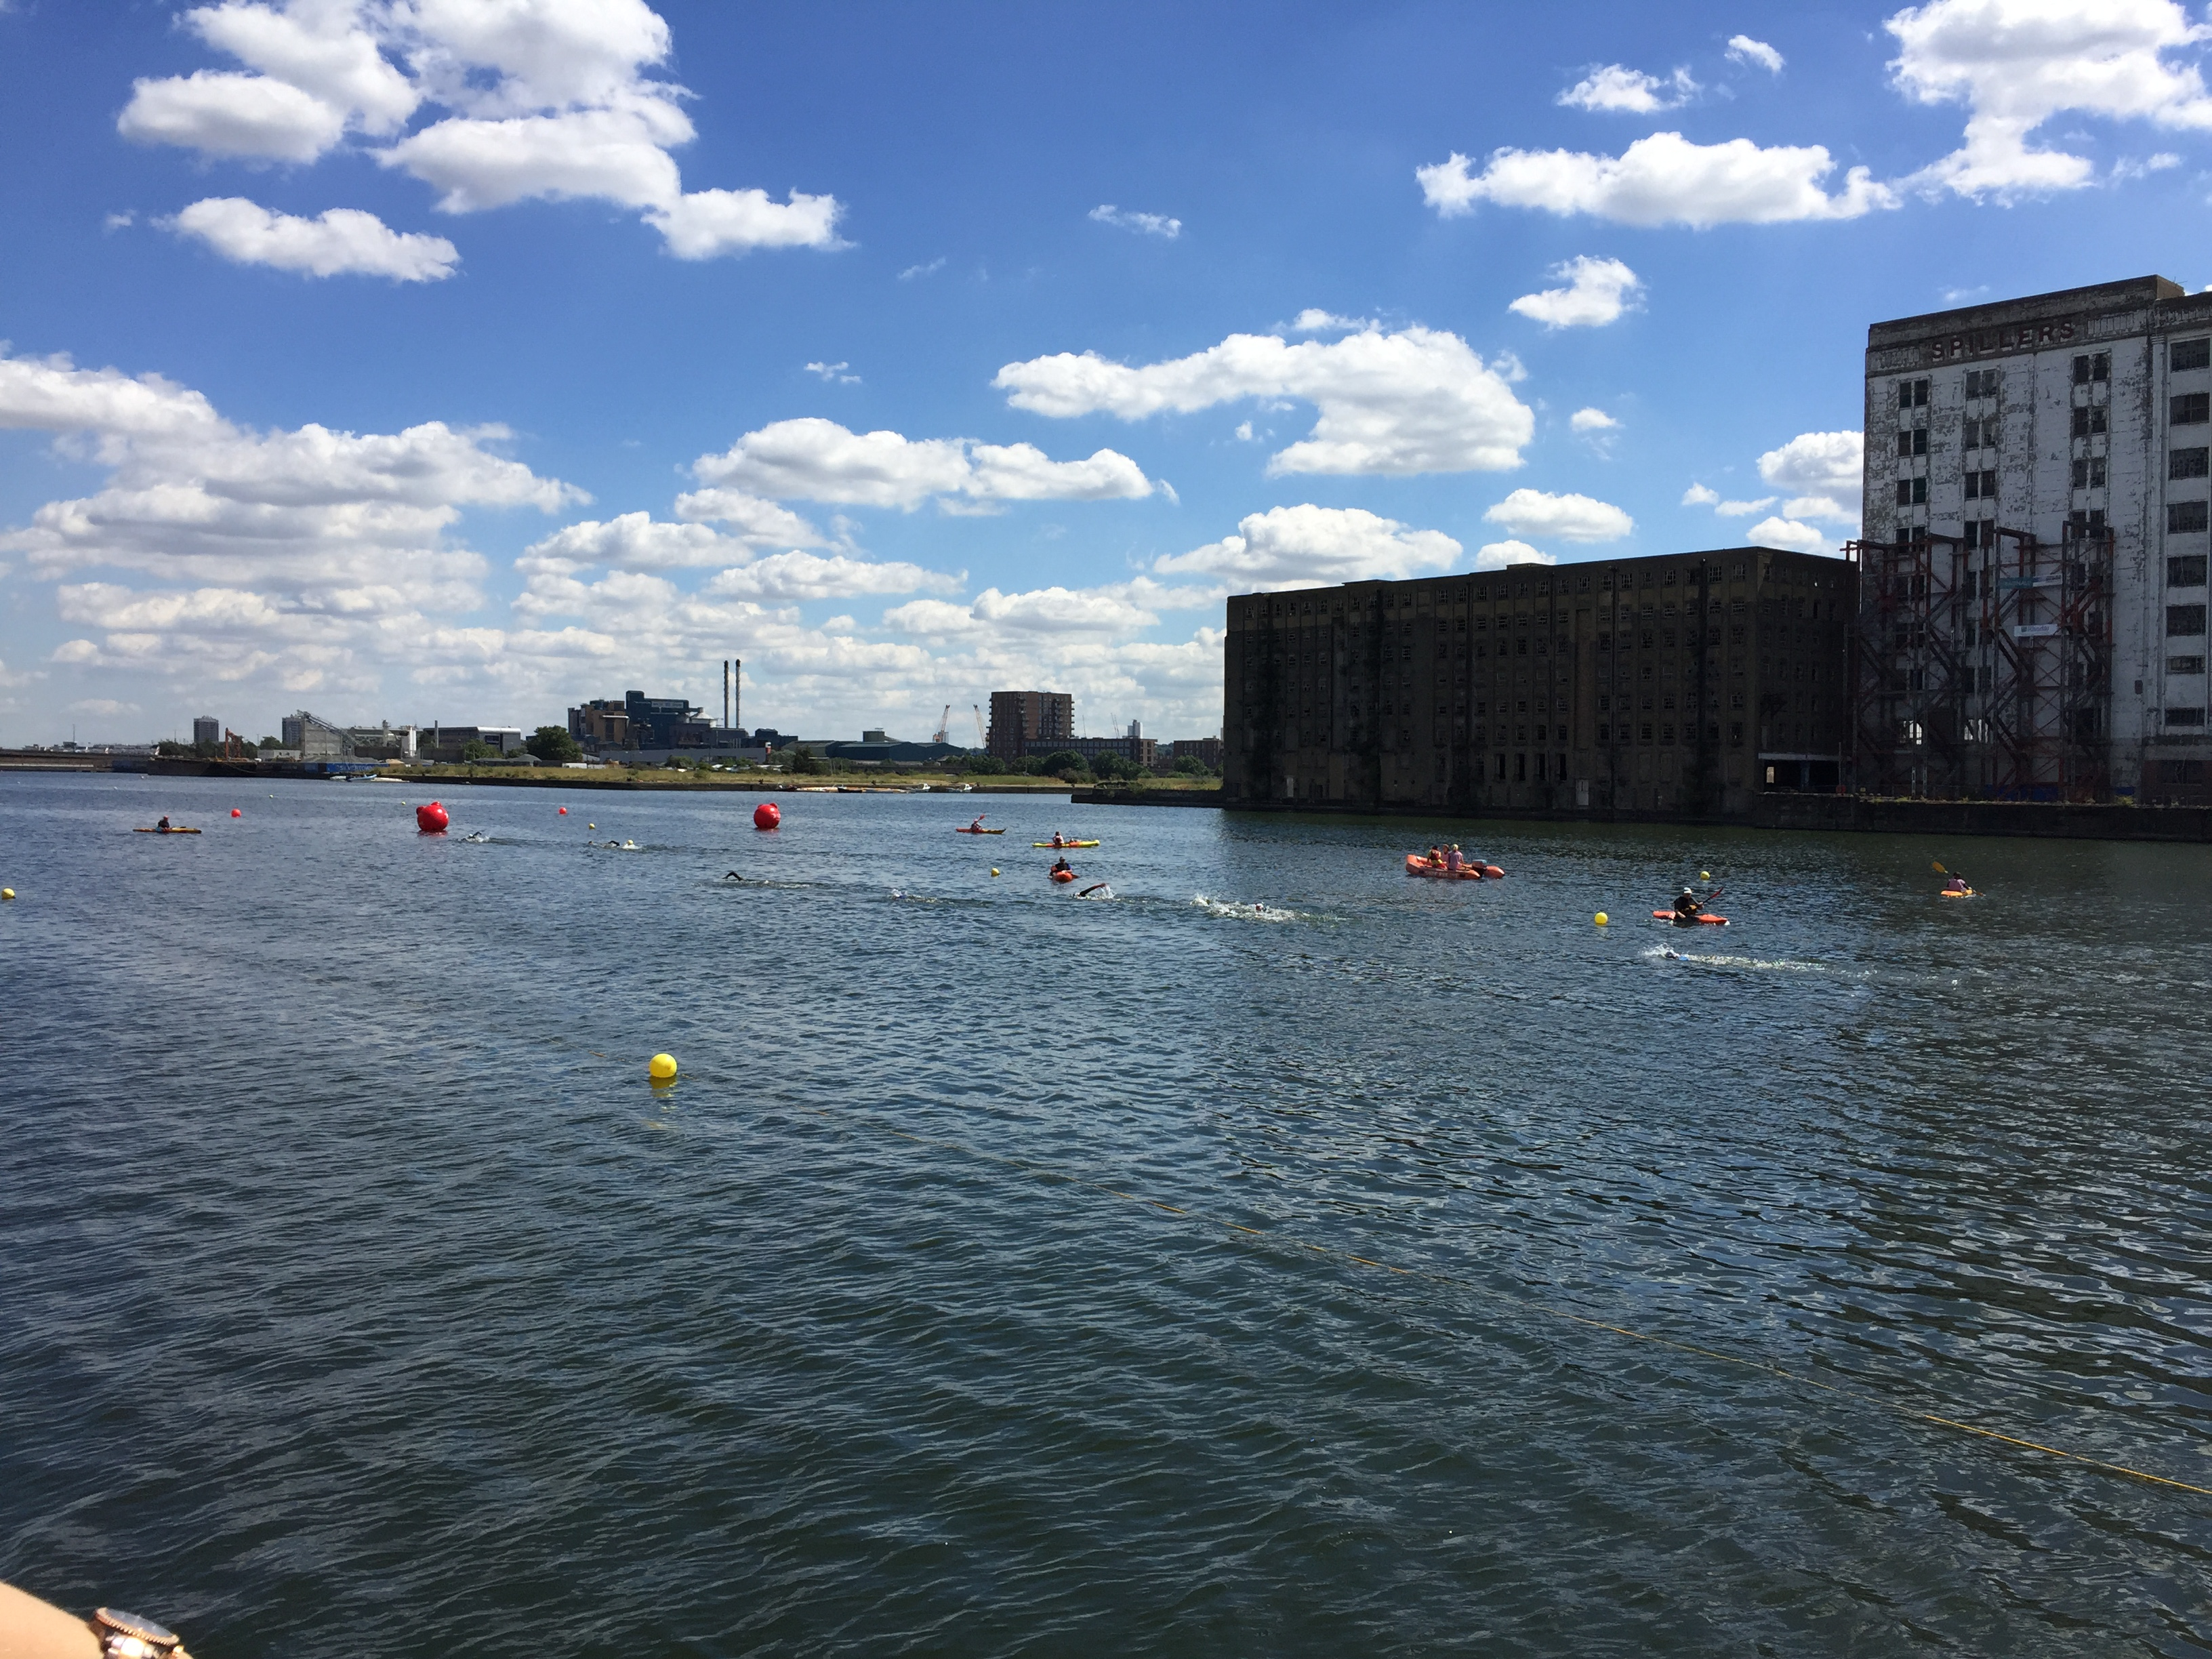 Second lap of the swim - Stu's there at the front of the chase pack